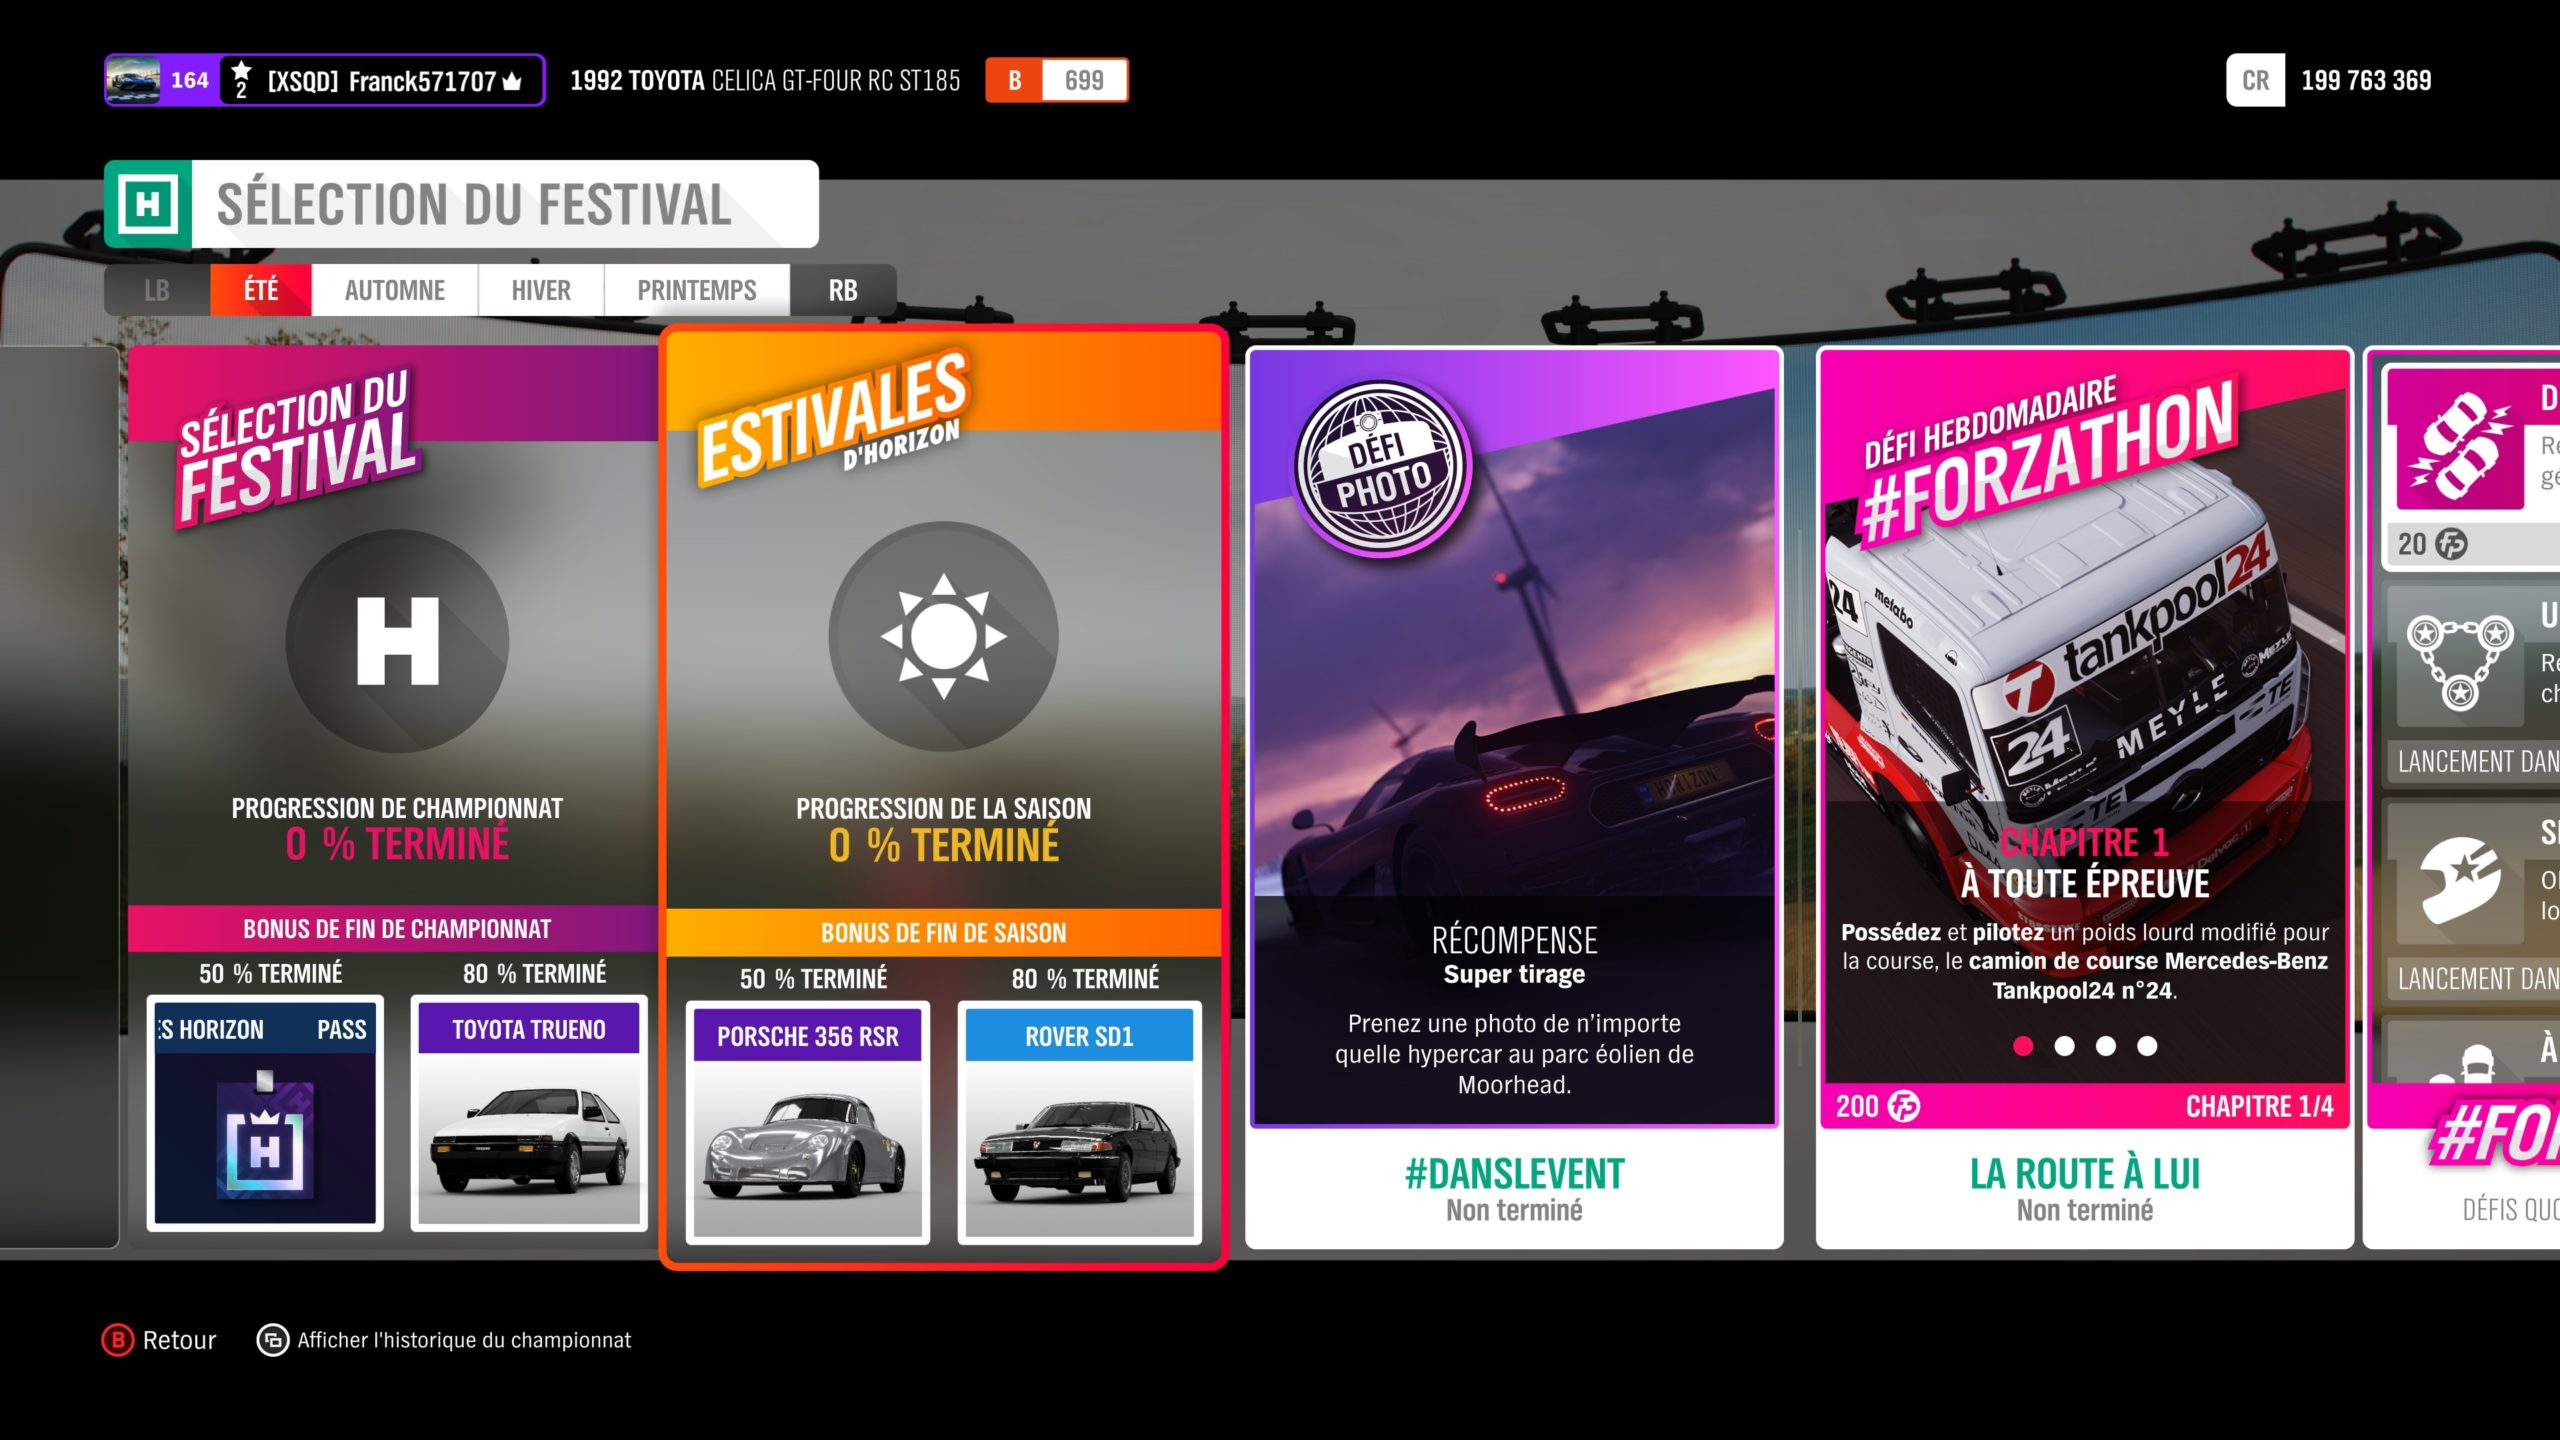 Forza-Horizon-4-Sélection-Festival-Horizon-49-Ete-08-04-2021-15-04-2021-1